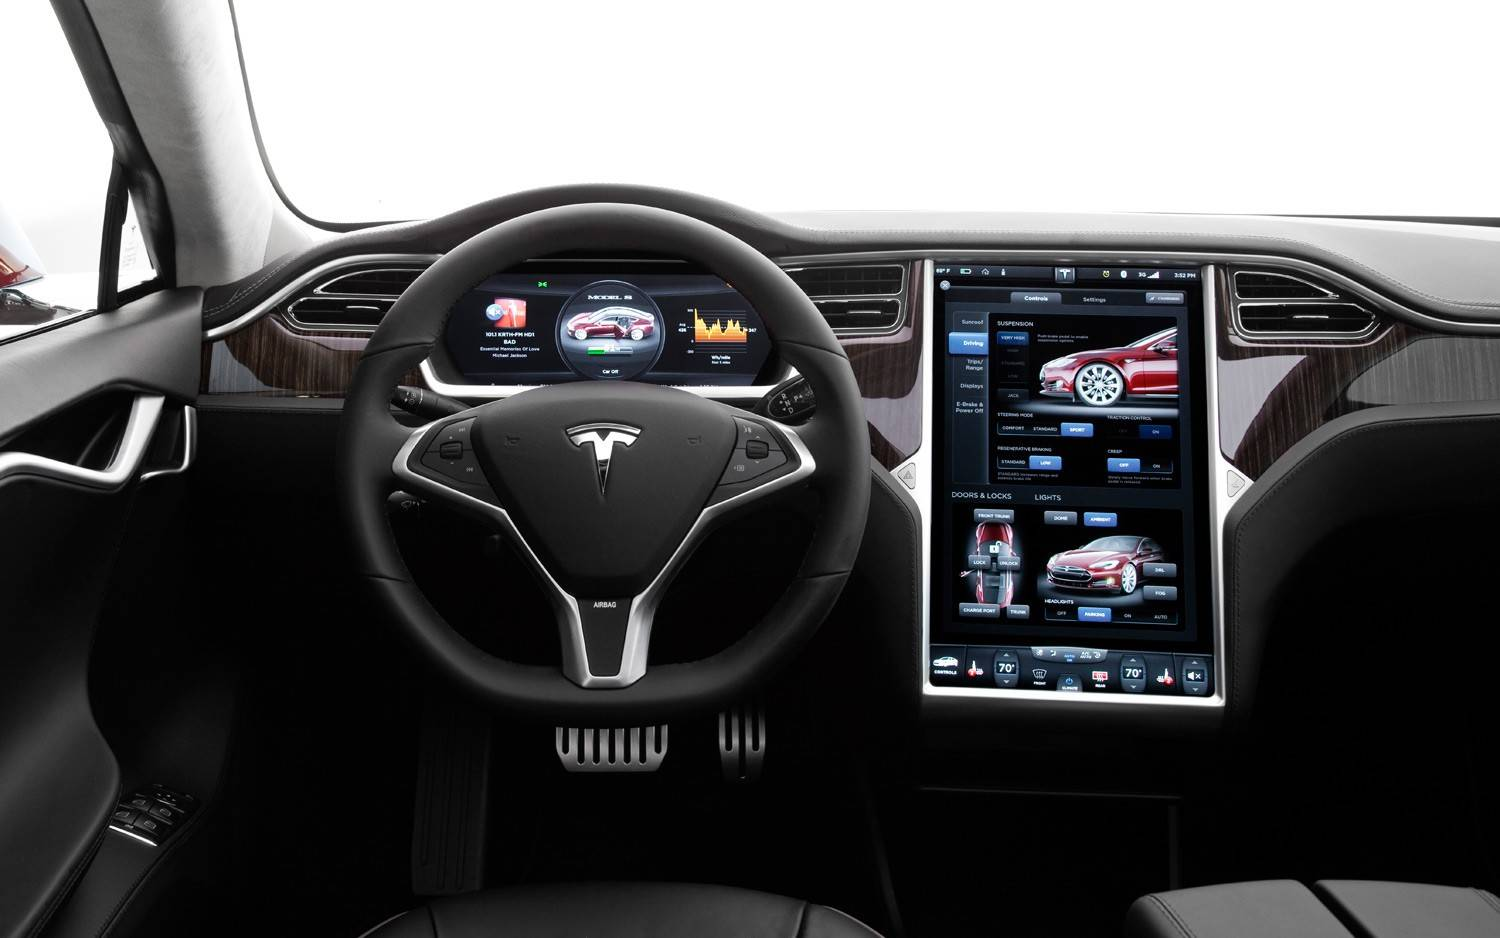 Tesla Motors Inc., a month after starting Model S deliveries in the U.K., said its flagship electric sedan is among the cars being considered for purchase by the government there to transport officials.